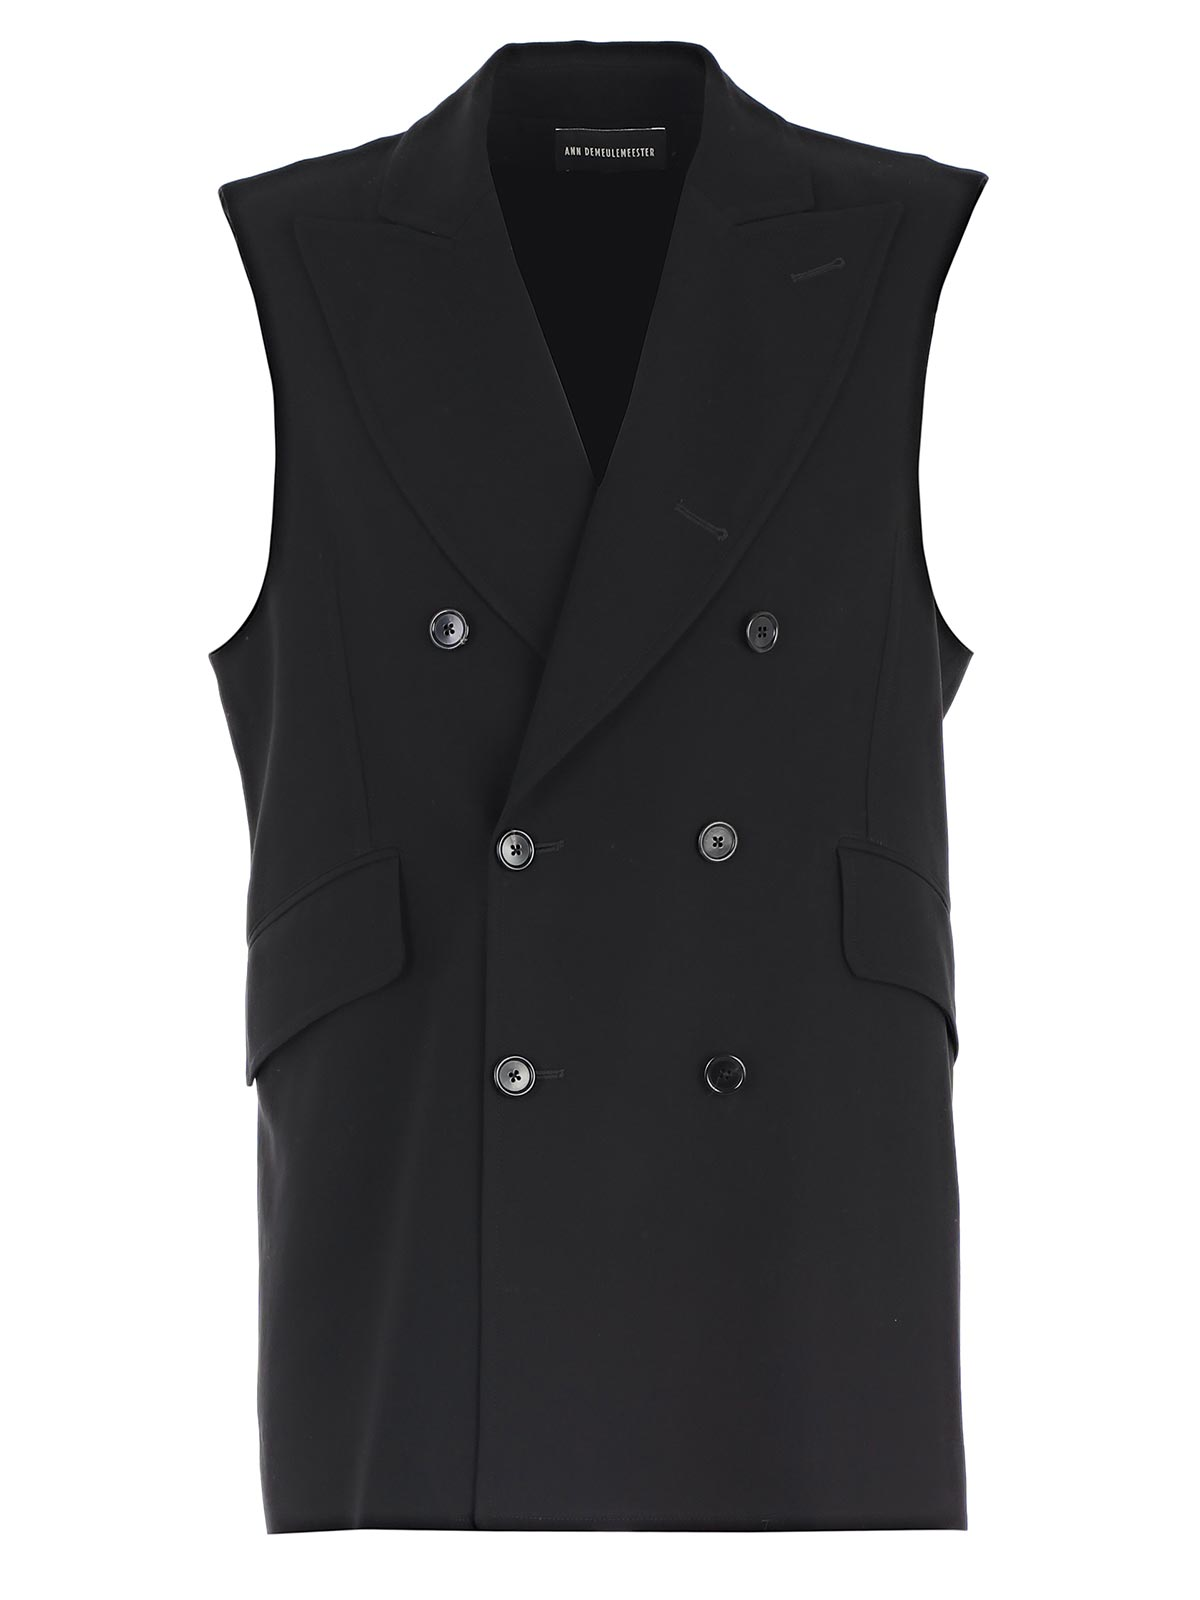 Picture of Ann Demeulemester Waistcoat